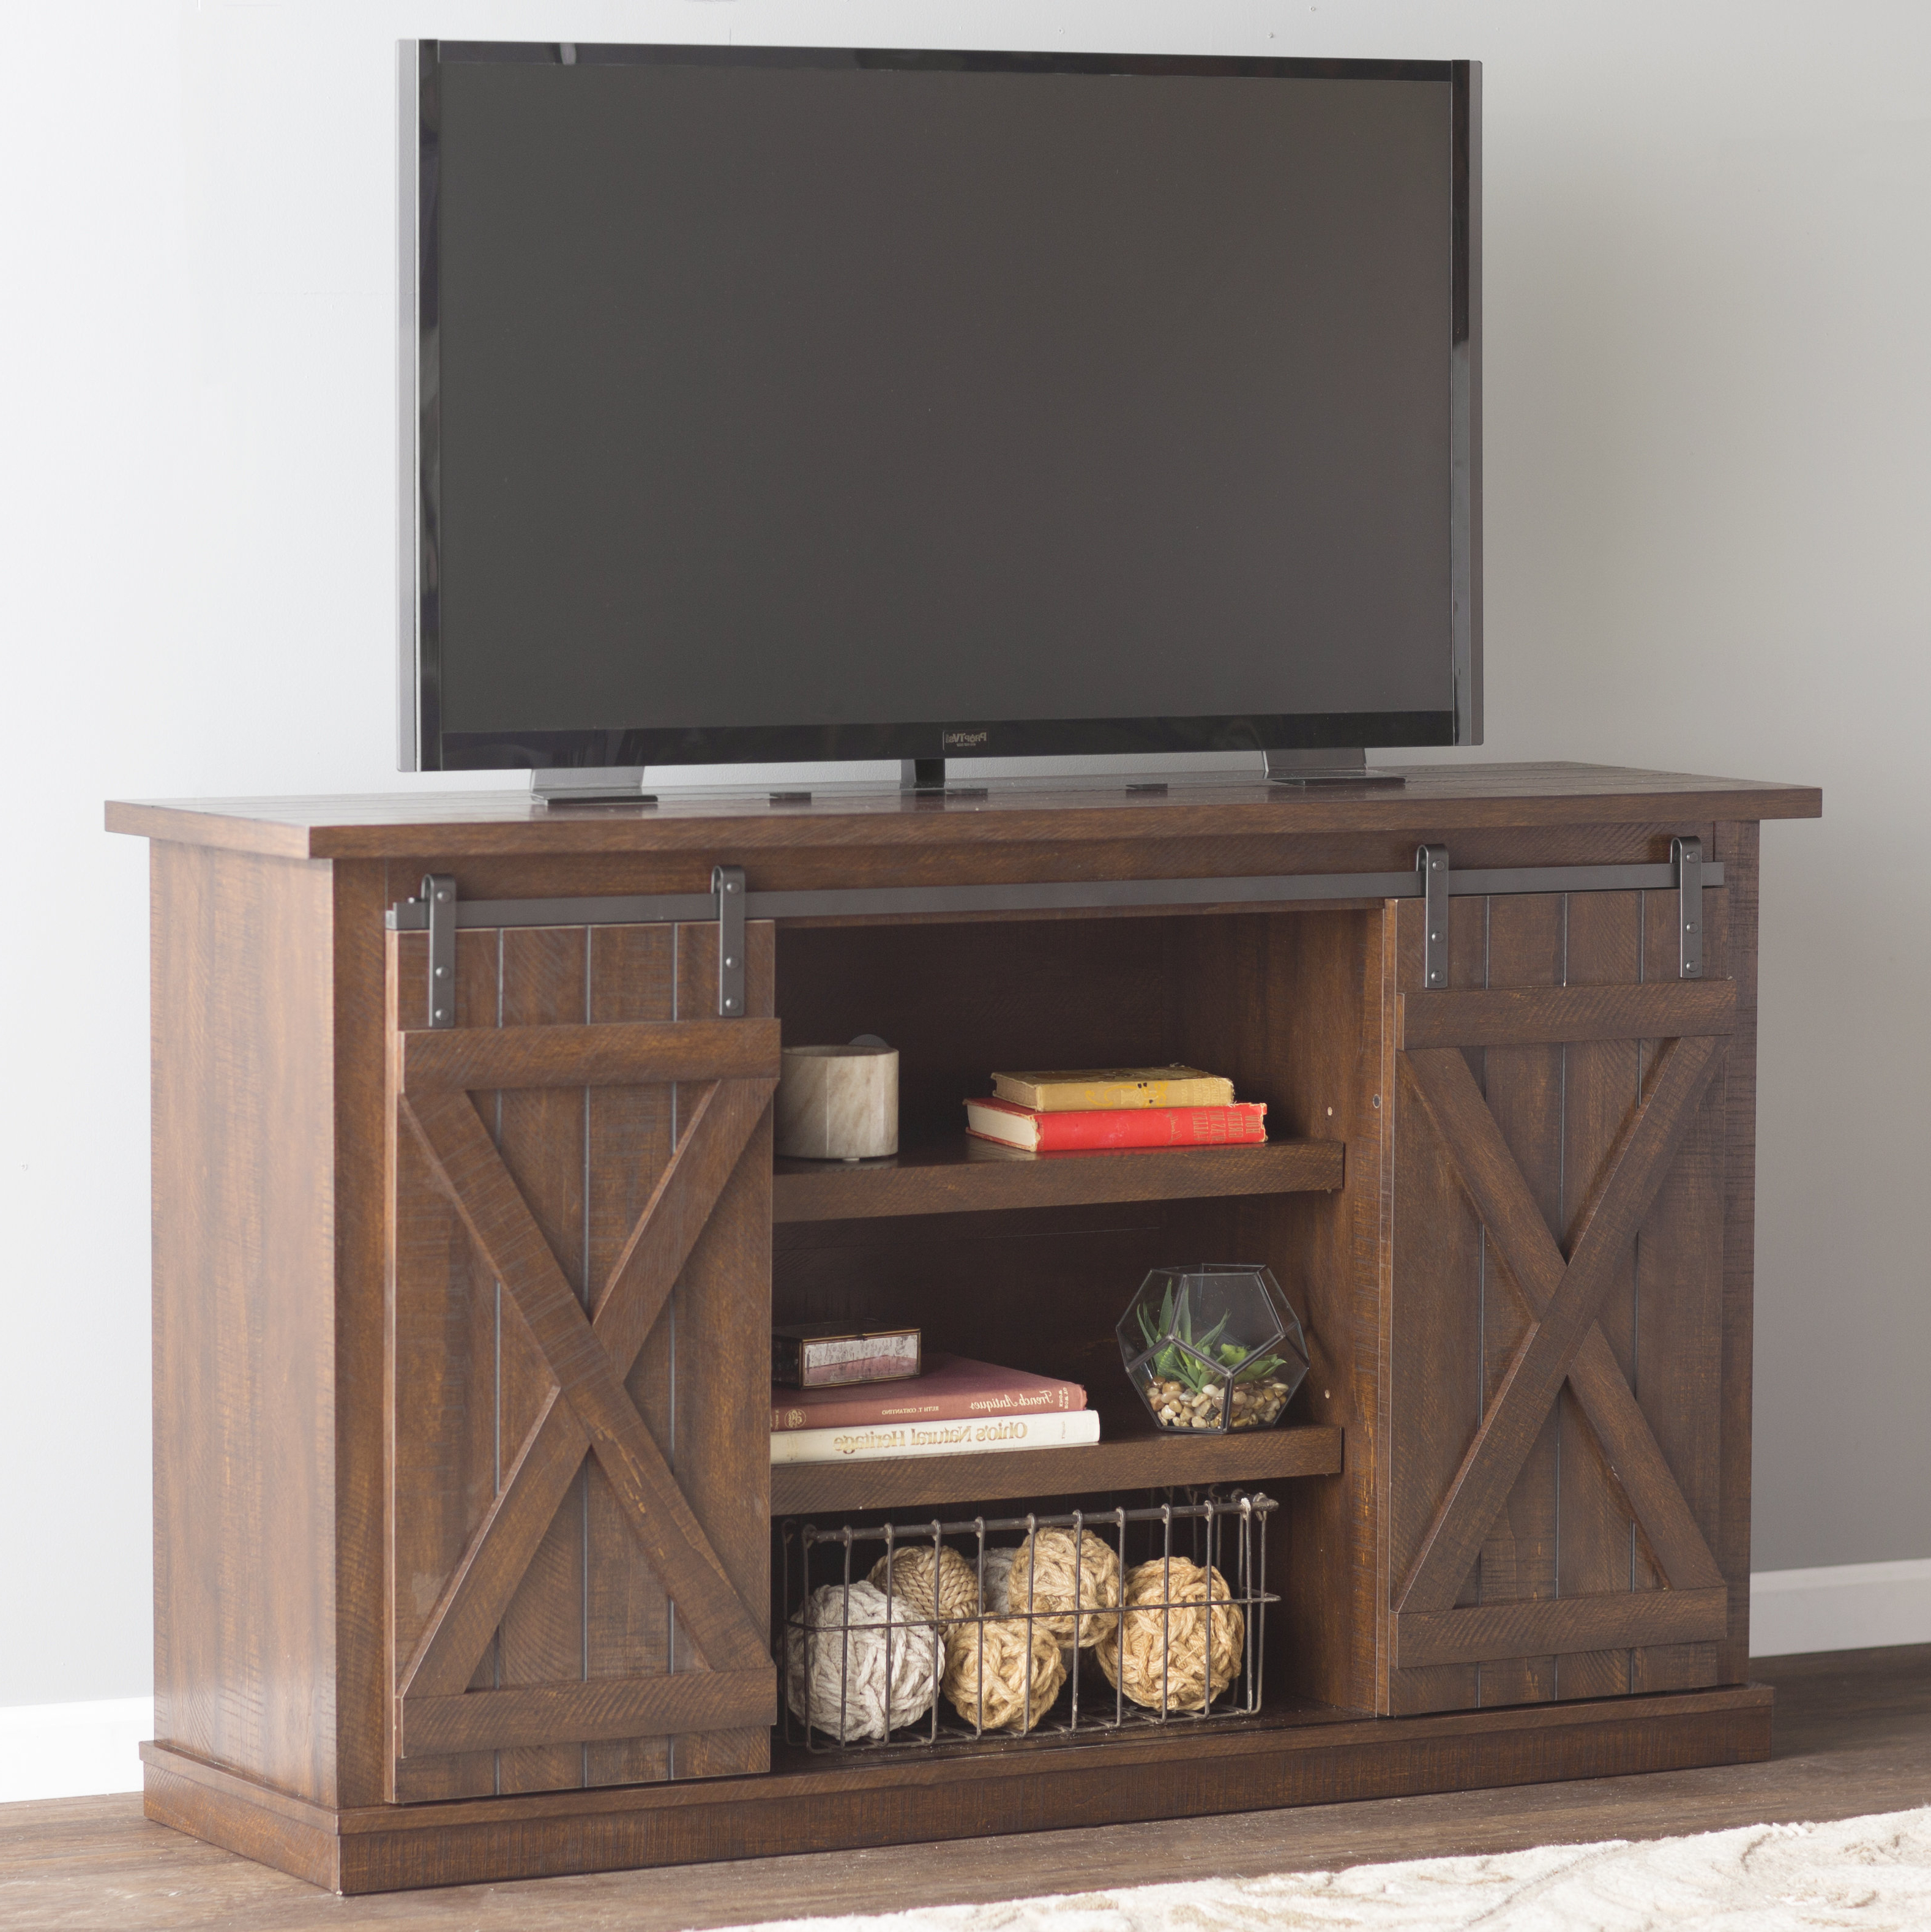 Wayfair Throughout Popular Sinclair Blue 64 Inch Tv Stands (View 17 of 20)